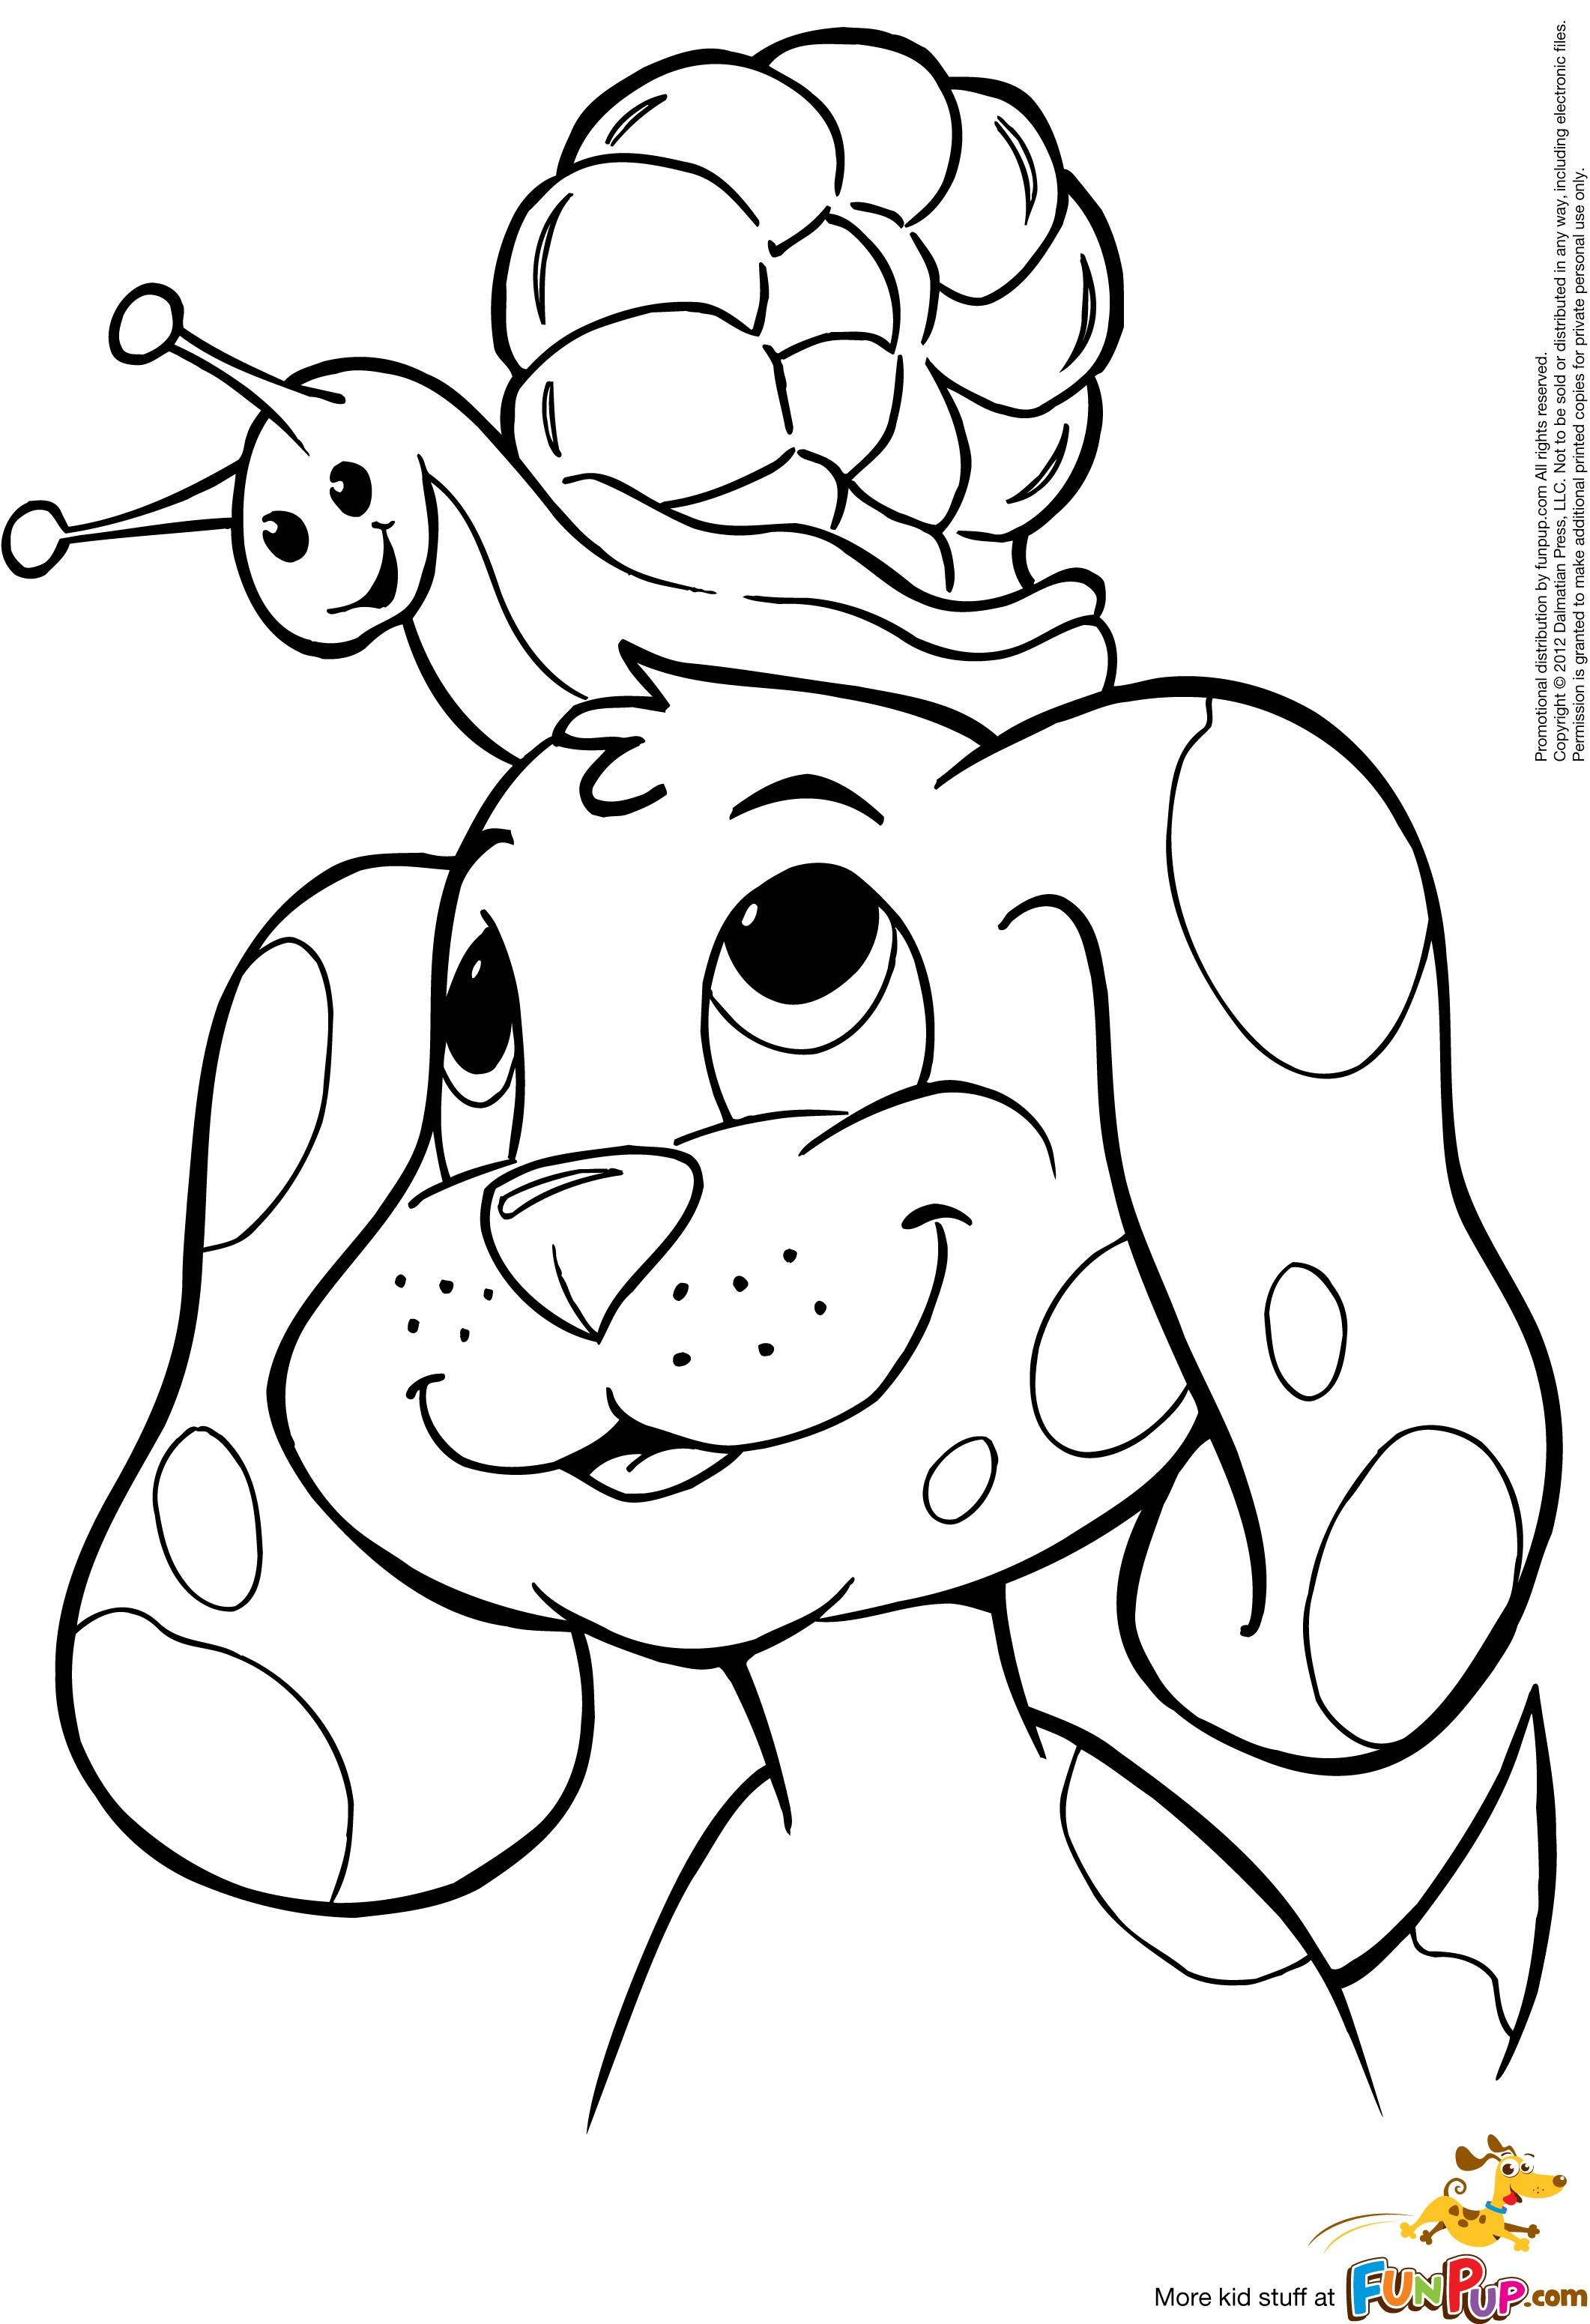 puppy coloring pages printable free puppy dog coloring pages to download and print for free free puppy printable coloring pages